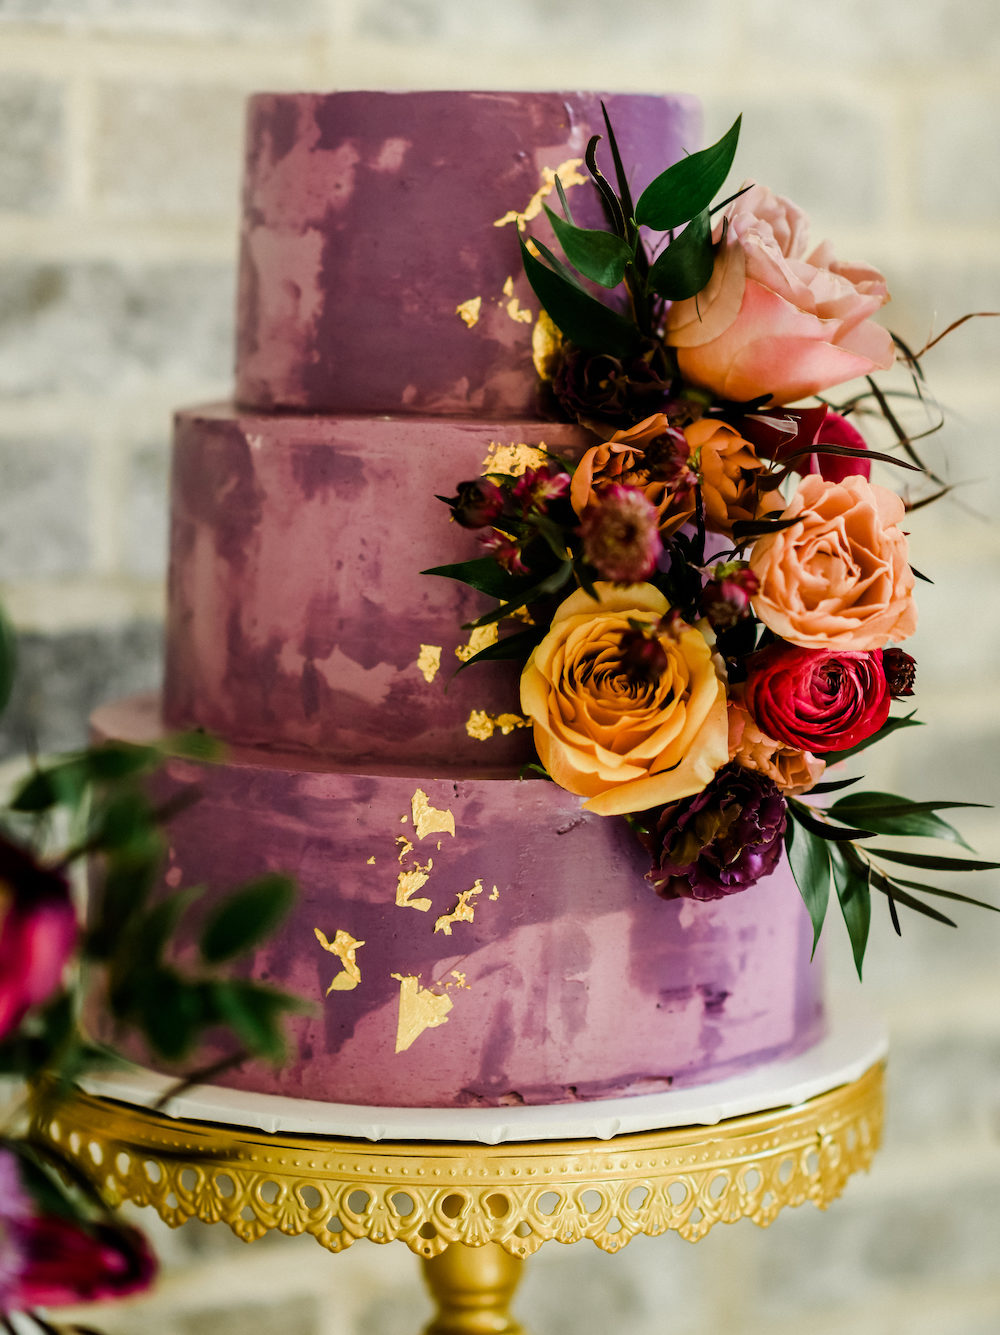 Becca's Cakes three tiered purple and gold accented cake.